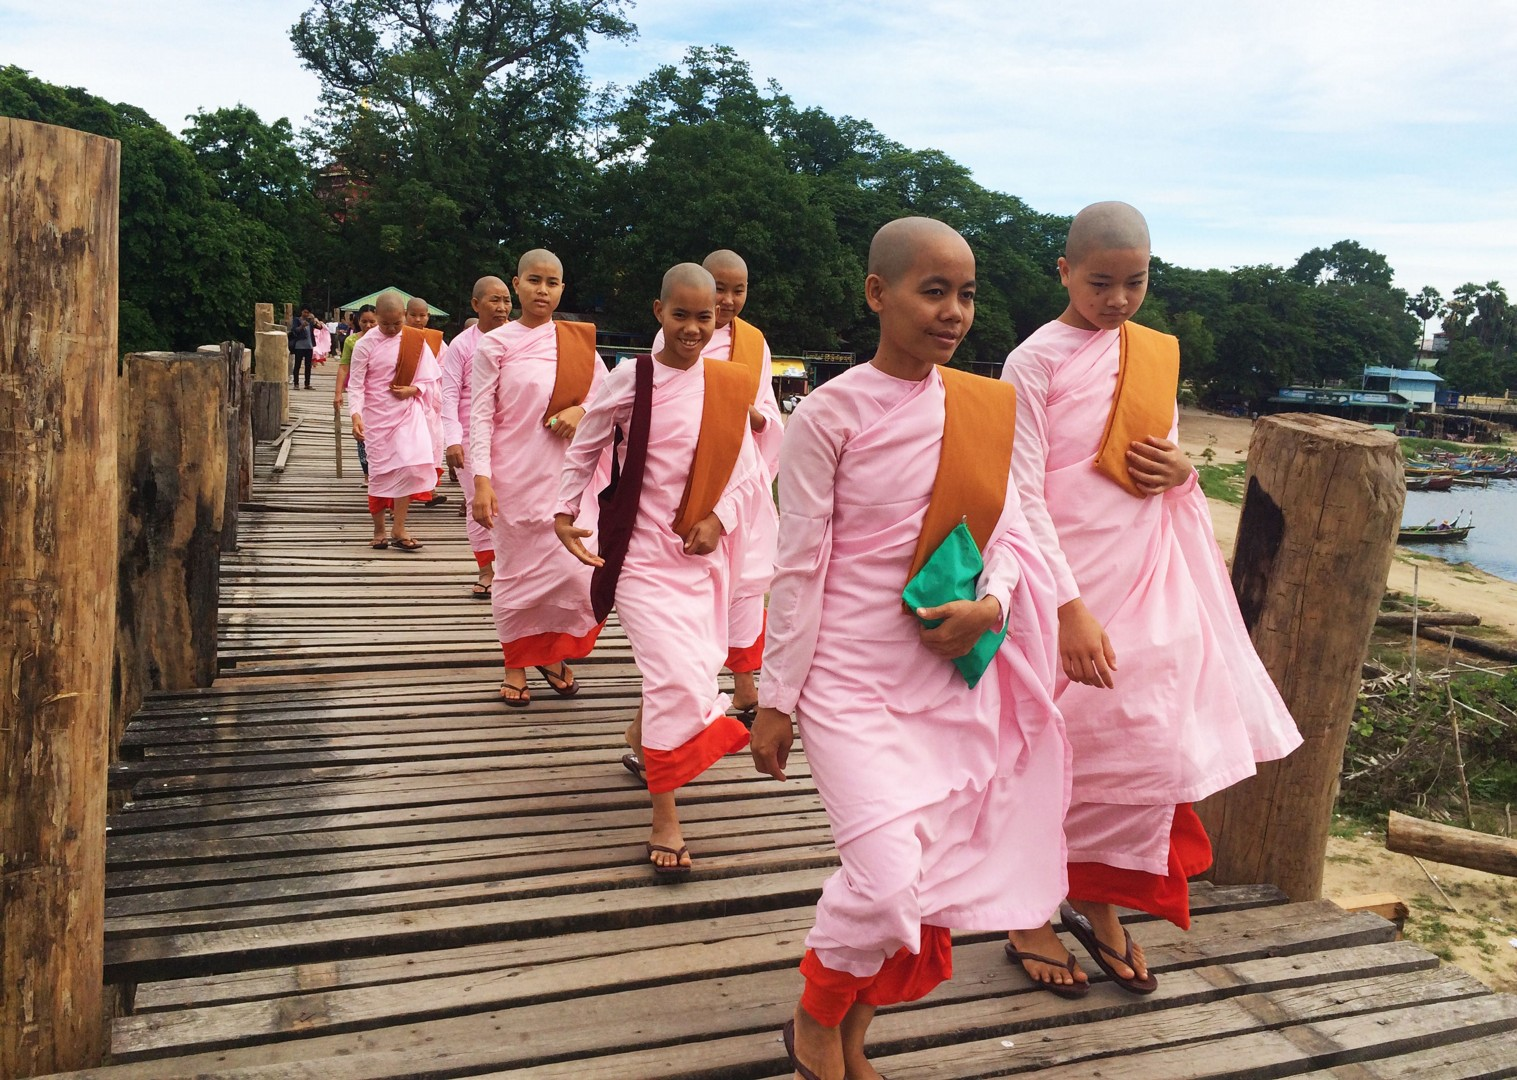 meet-locals-burma-group-cycling-holiday.jpg - Burma - Bagan and Beyond - Cycling Adventures